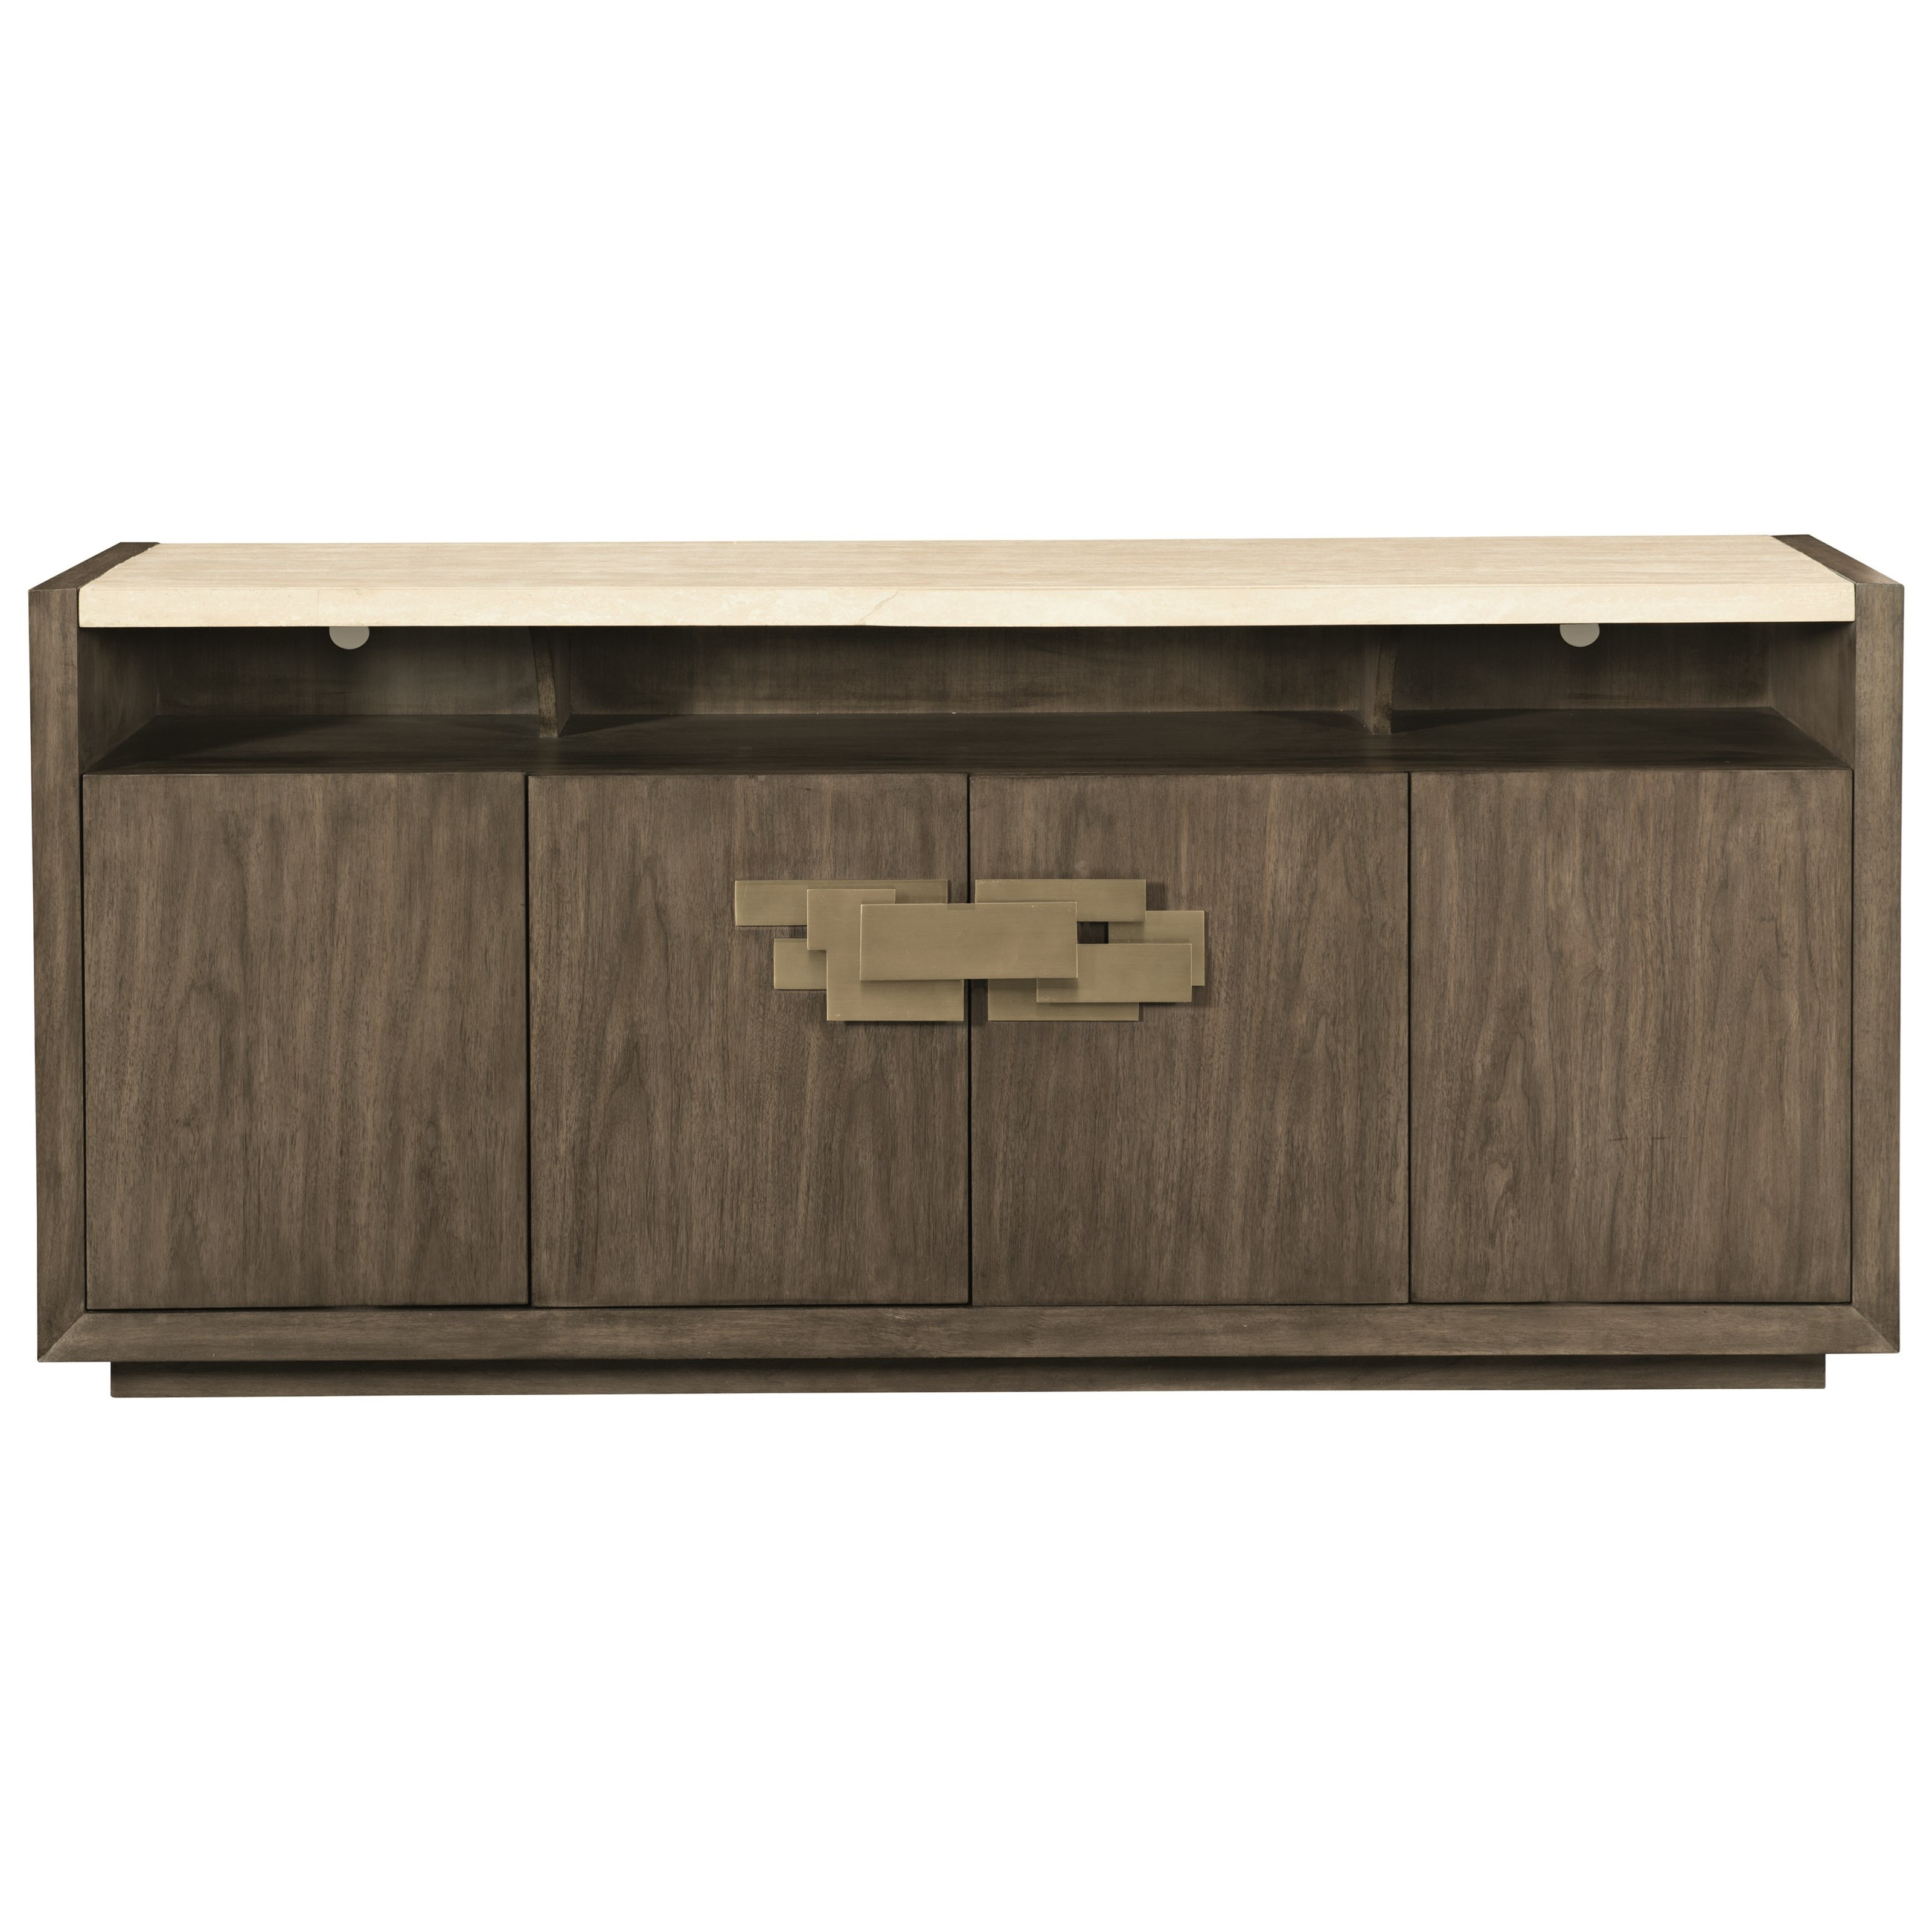 Profile Four Door Buffet by Bernhardt at Fisher Home Furnishings